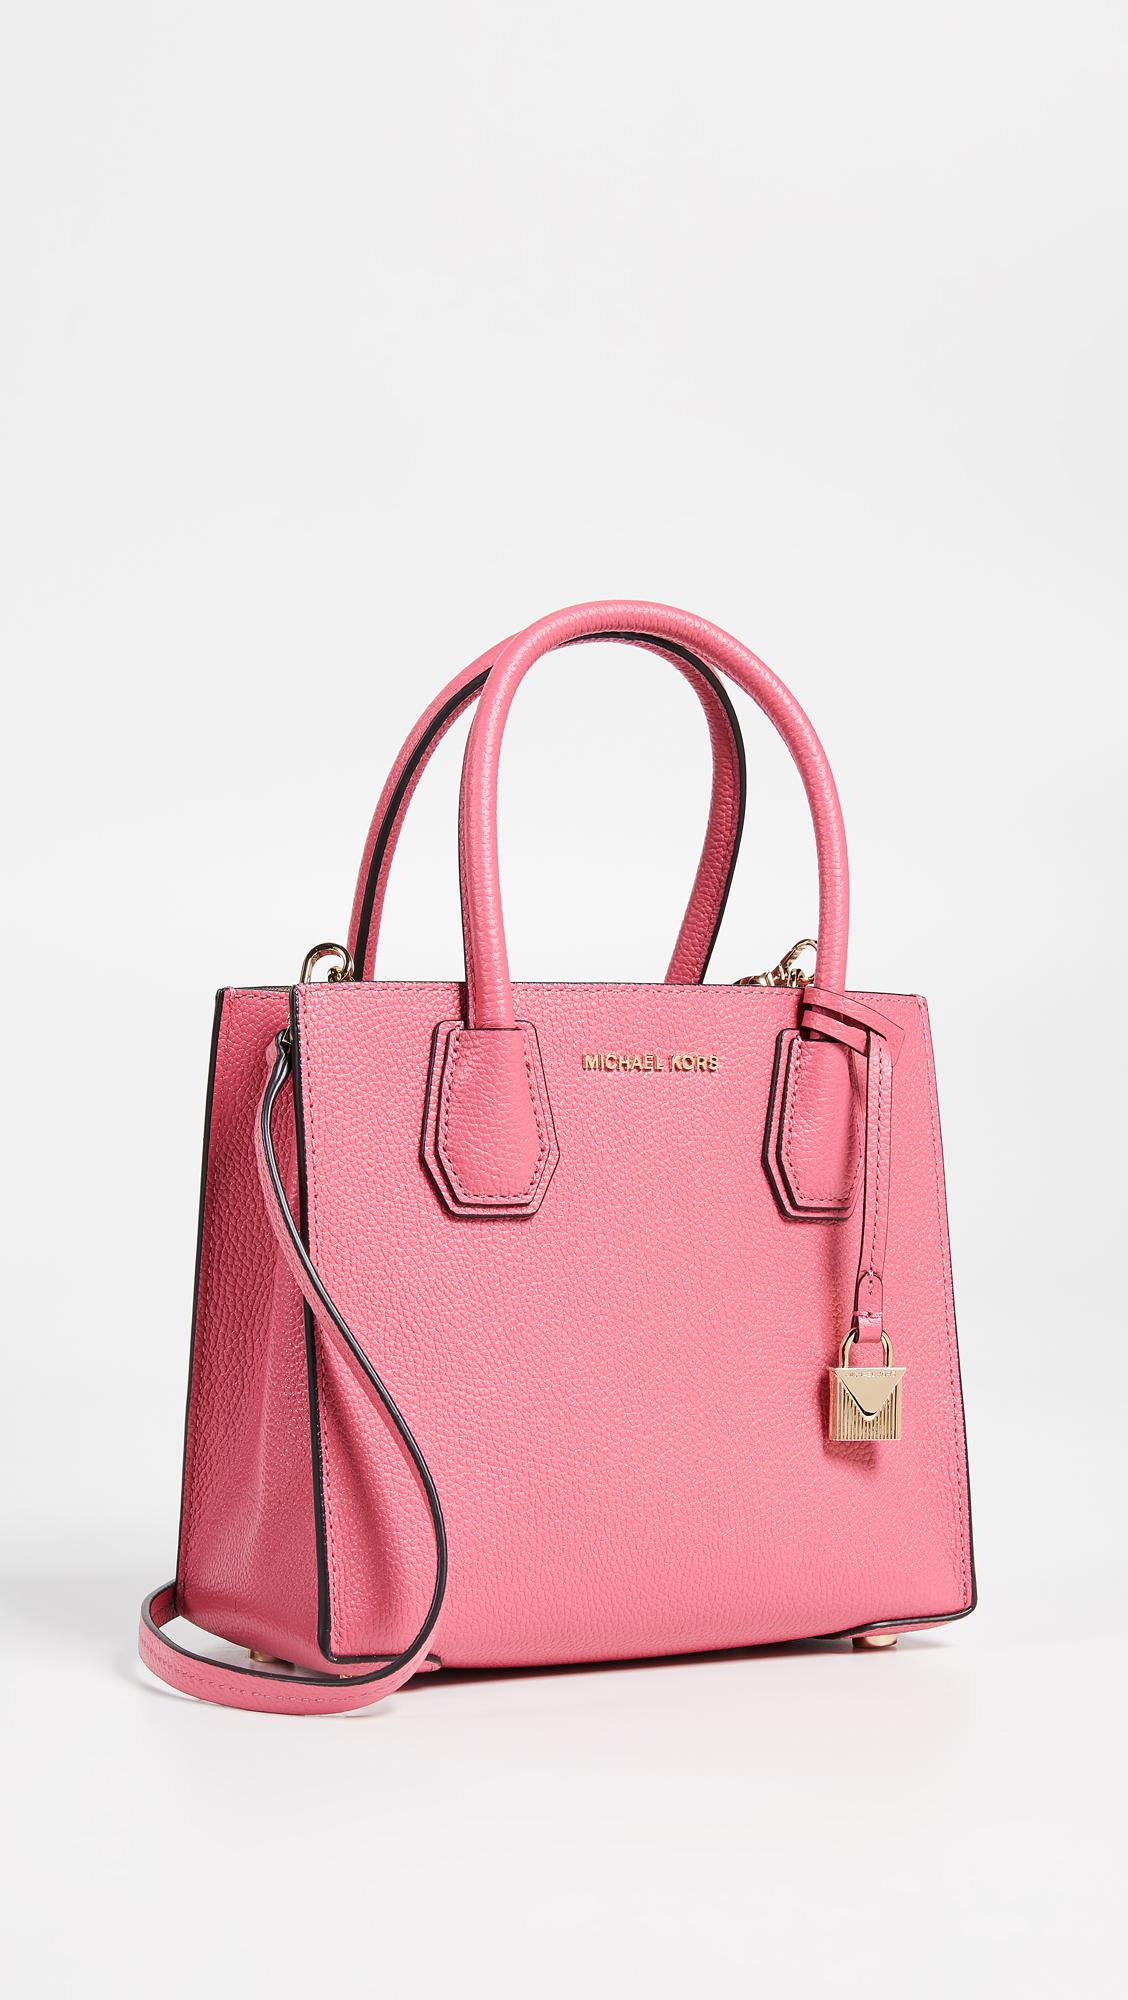 90482270b4a1 MICHAEL Michael Kors Mercer Medium Messenger Tote in Pink - Save 40 ...